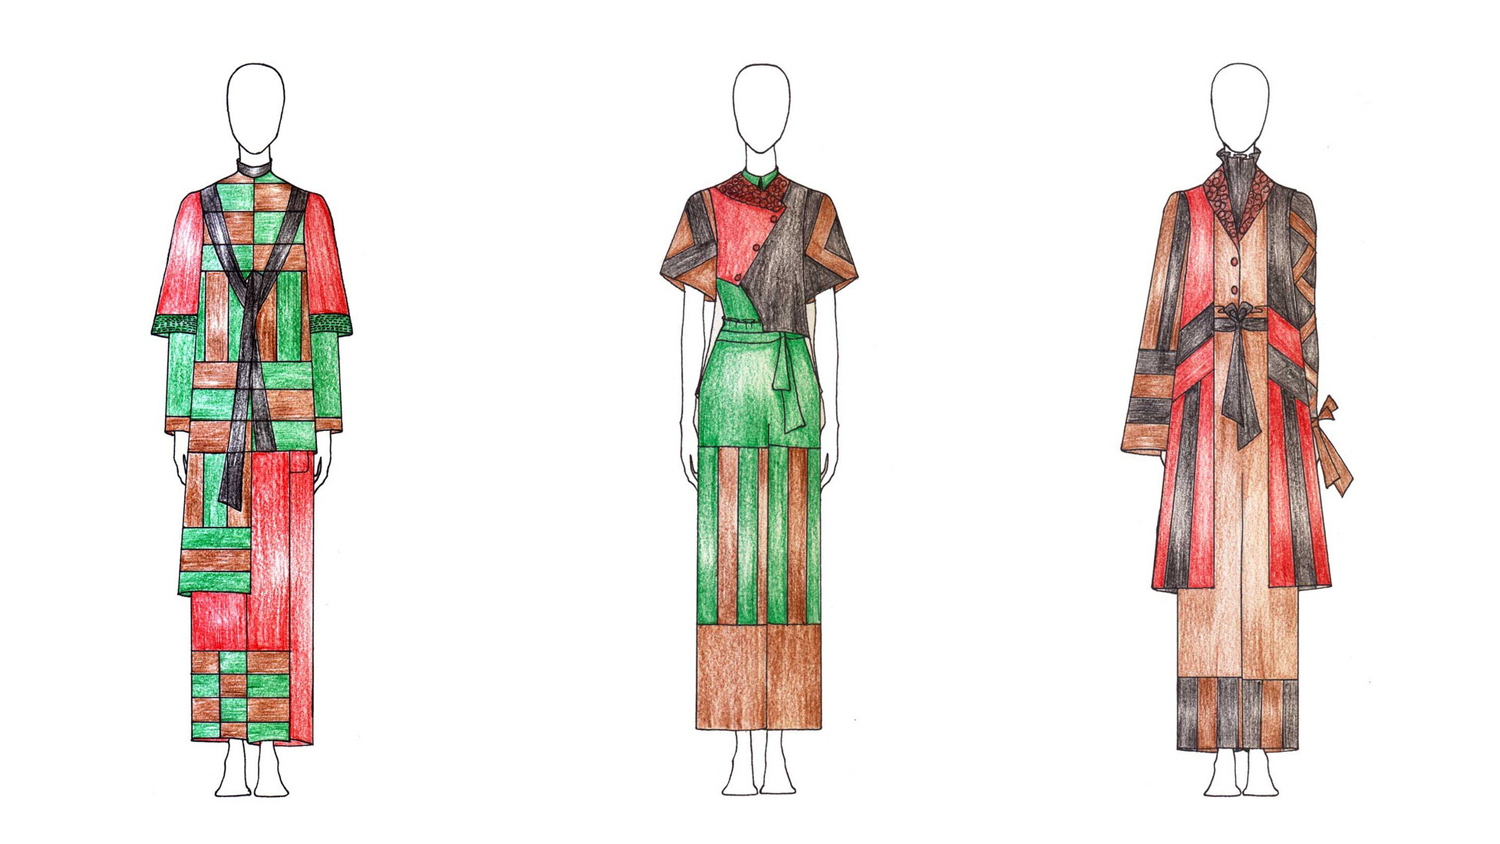 Redress Design Award 2019 submission